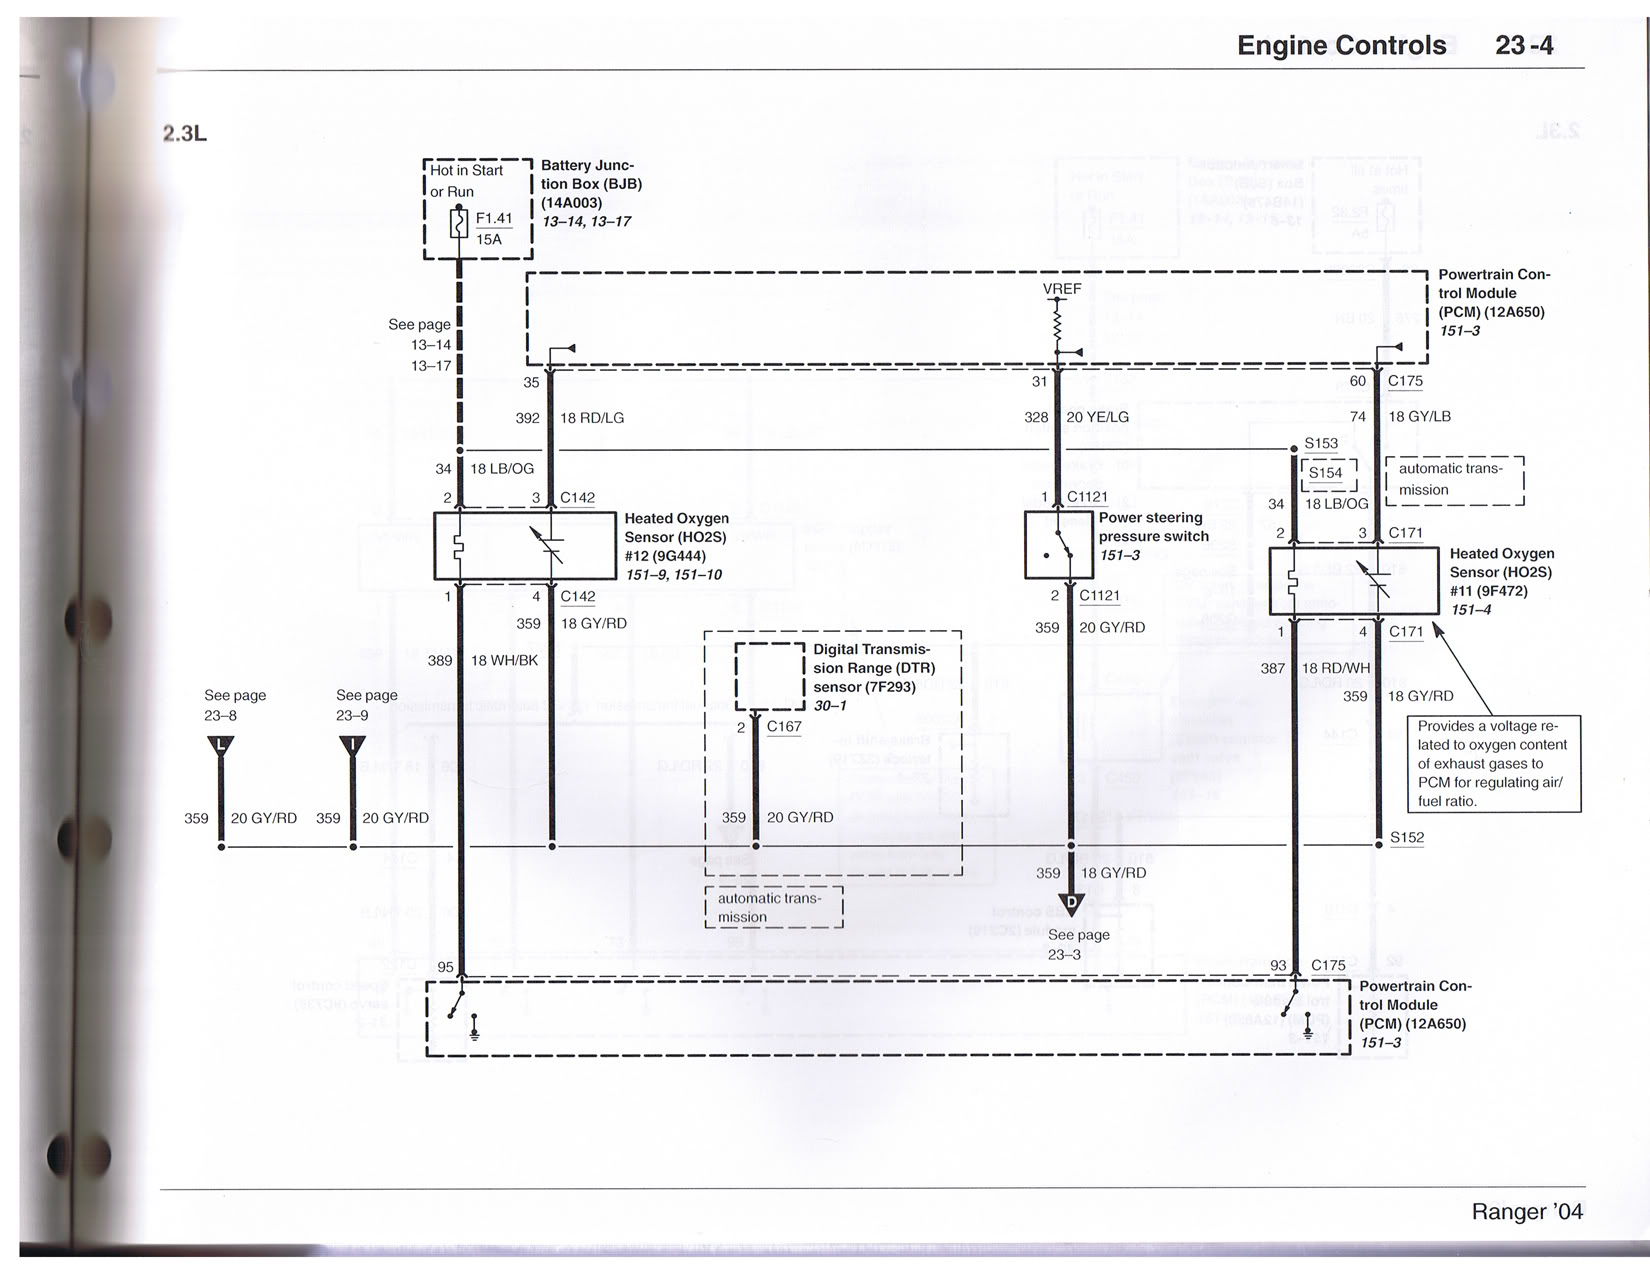 183476d1501435560 2004 2006 2 3 wiring diagram huge pics cci00007?resize\=665%2C514\&ssl\=1 diagrams 965700 ford ranger wire diagram ford ranger bronco ii 2006 ford ranger wiring schematic at reclaimingppi.co